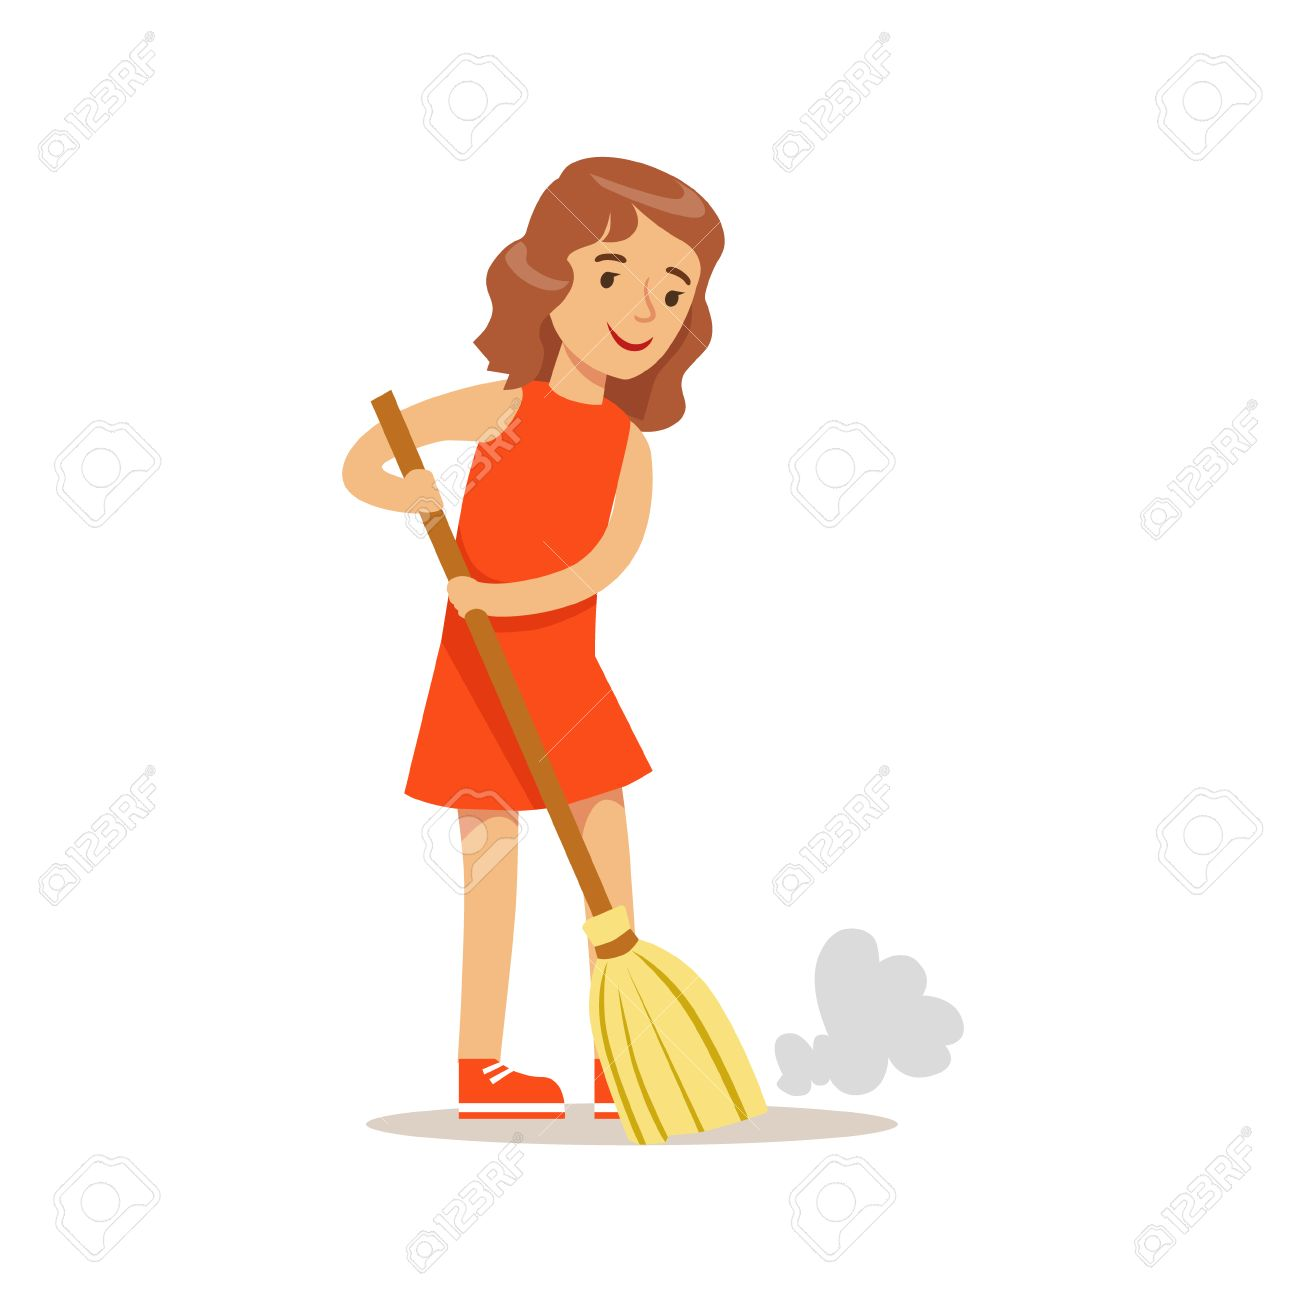 girl sweeping the floor with the broom smiling cartoon kid character stock photo picture and royalty free image image 68492896 girl sweeping the floor with the broom smiling cartoon kid character